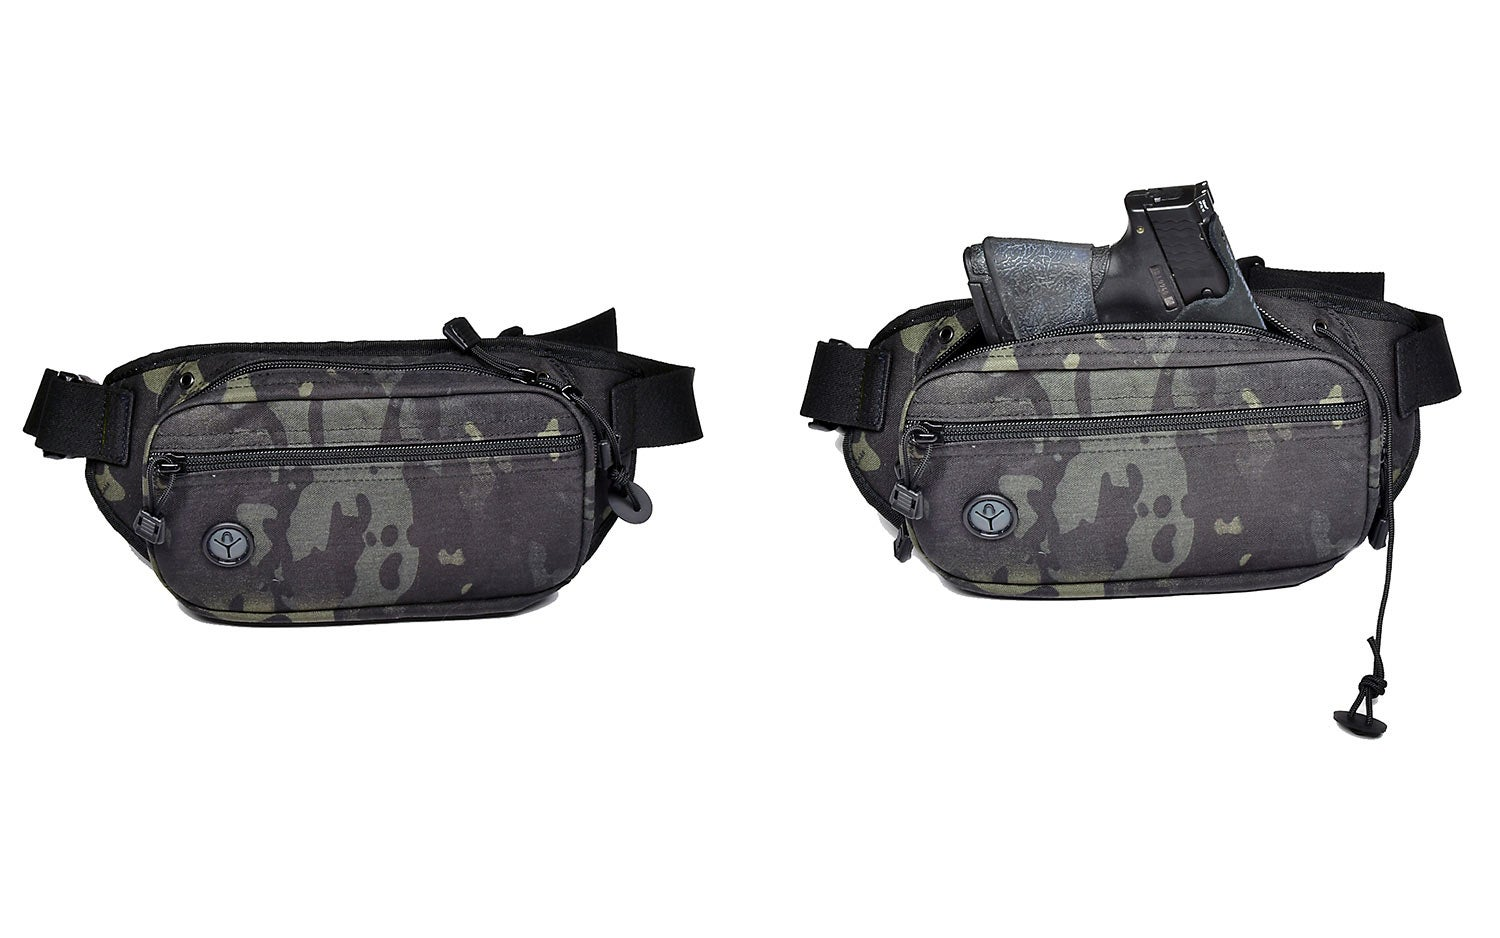 A camoflauge waist pack on a white background.